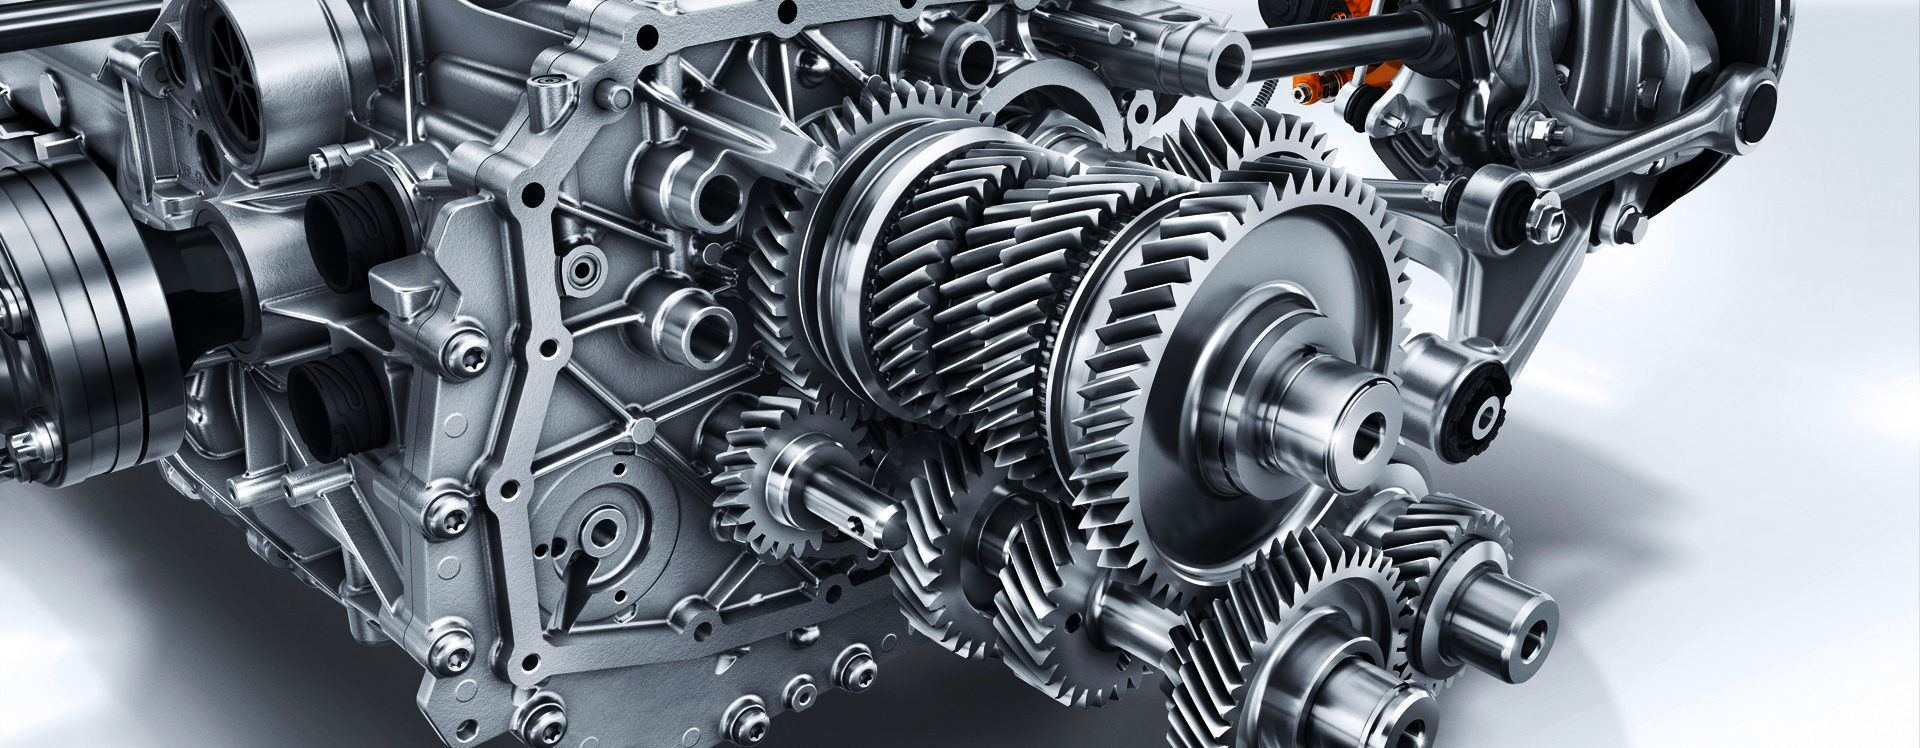 Transmission rebuild services near me